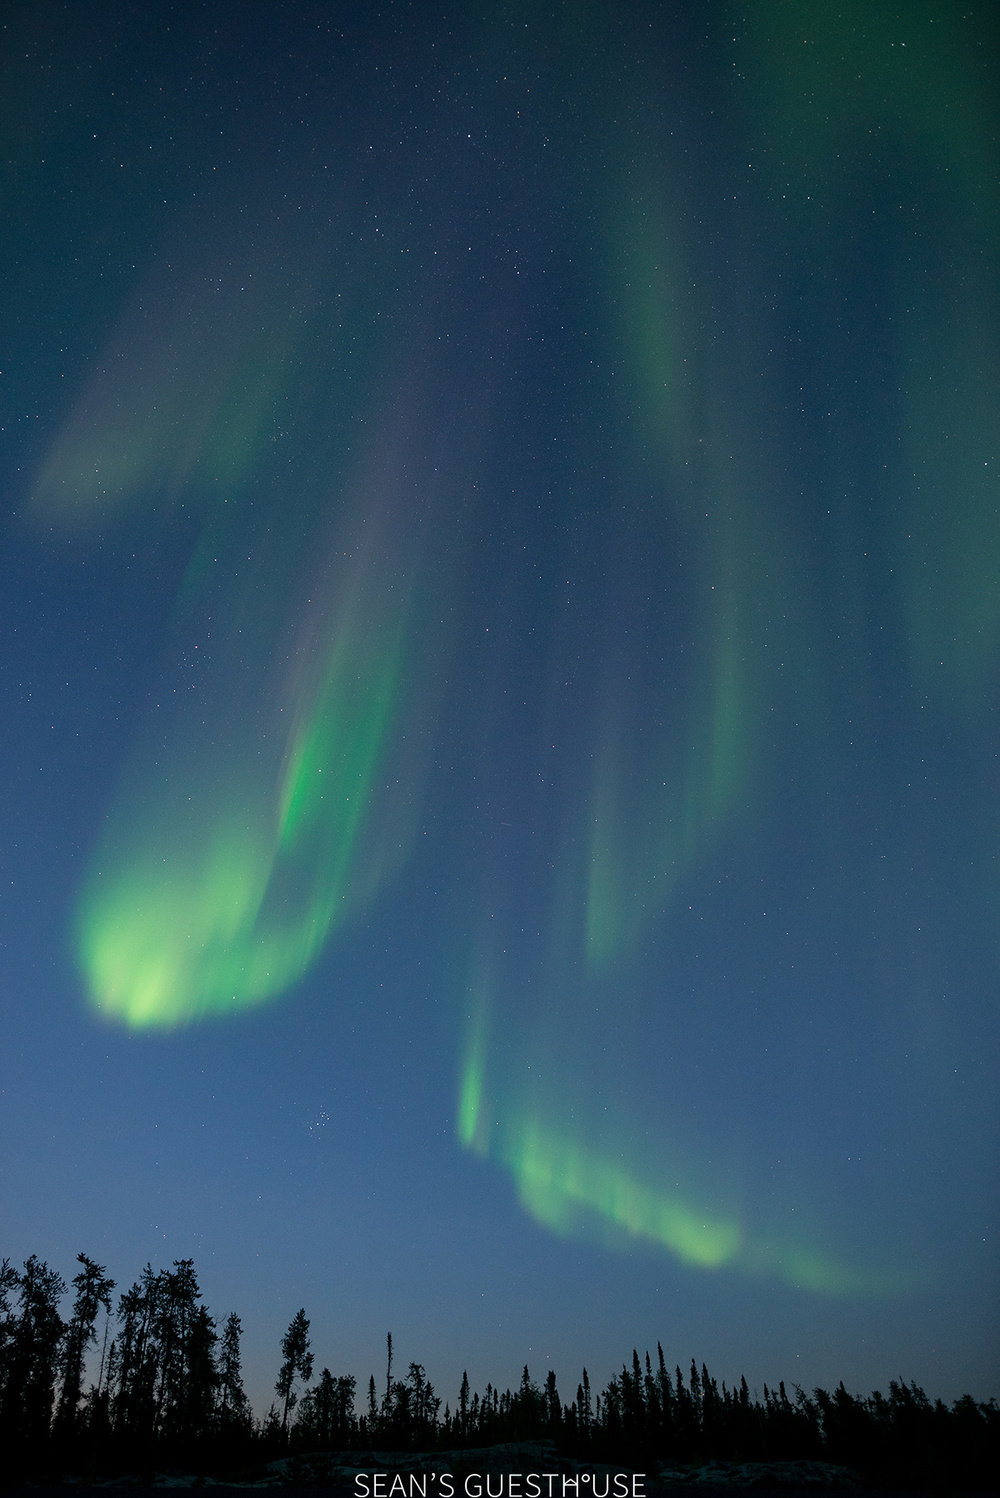 Sean's Guesthouse - Yellowknife Northern Lights - Summer Aurora - 4.jpg